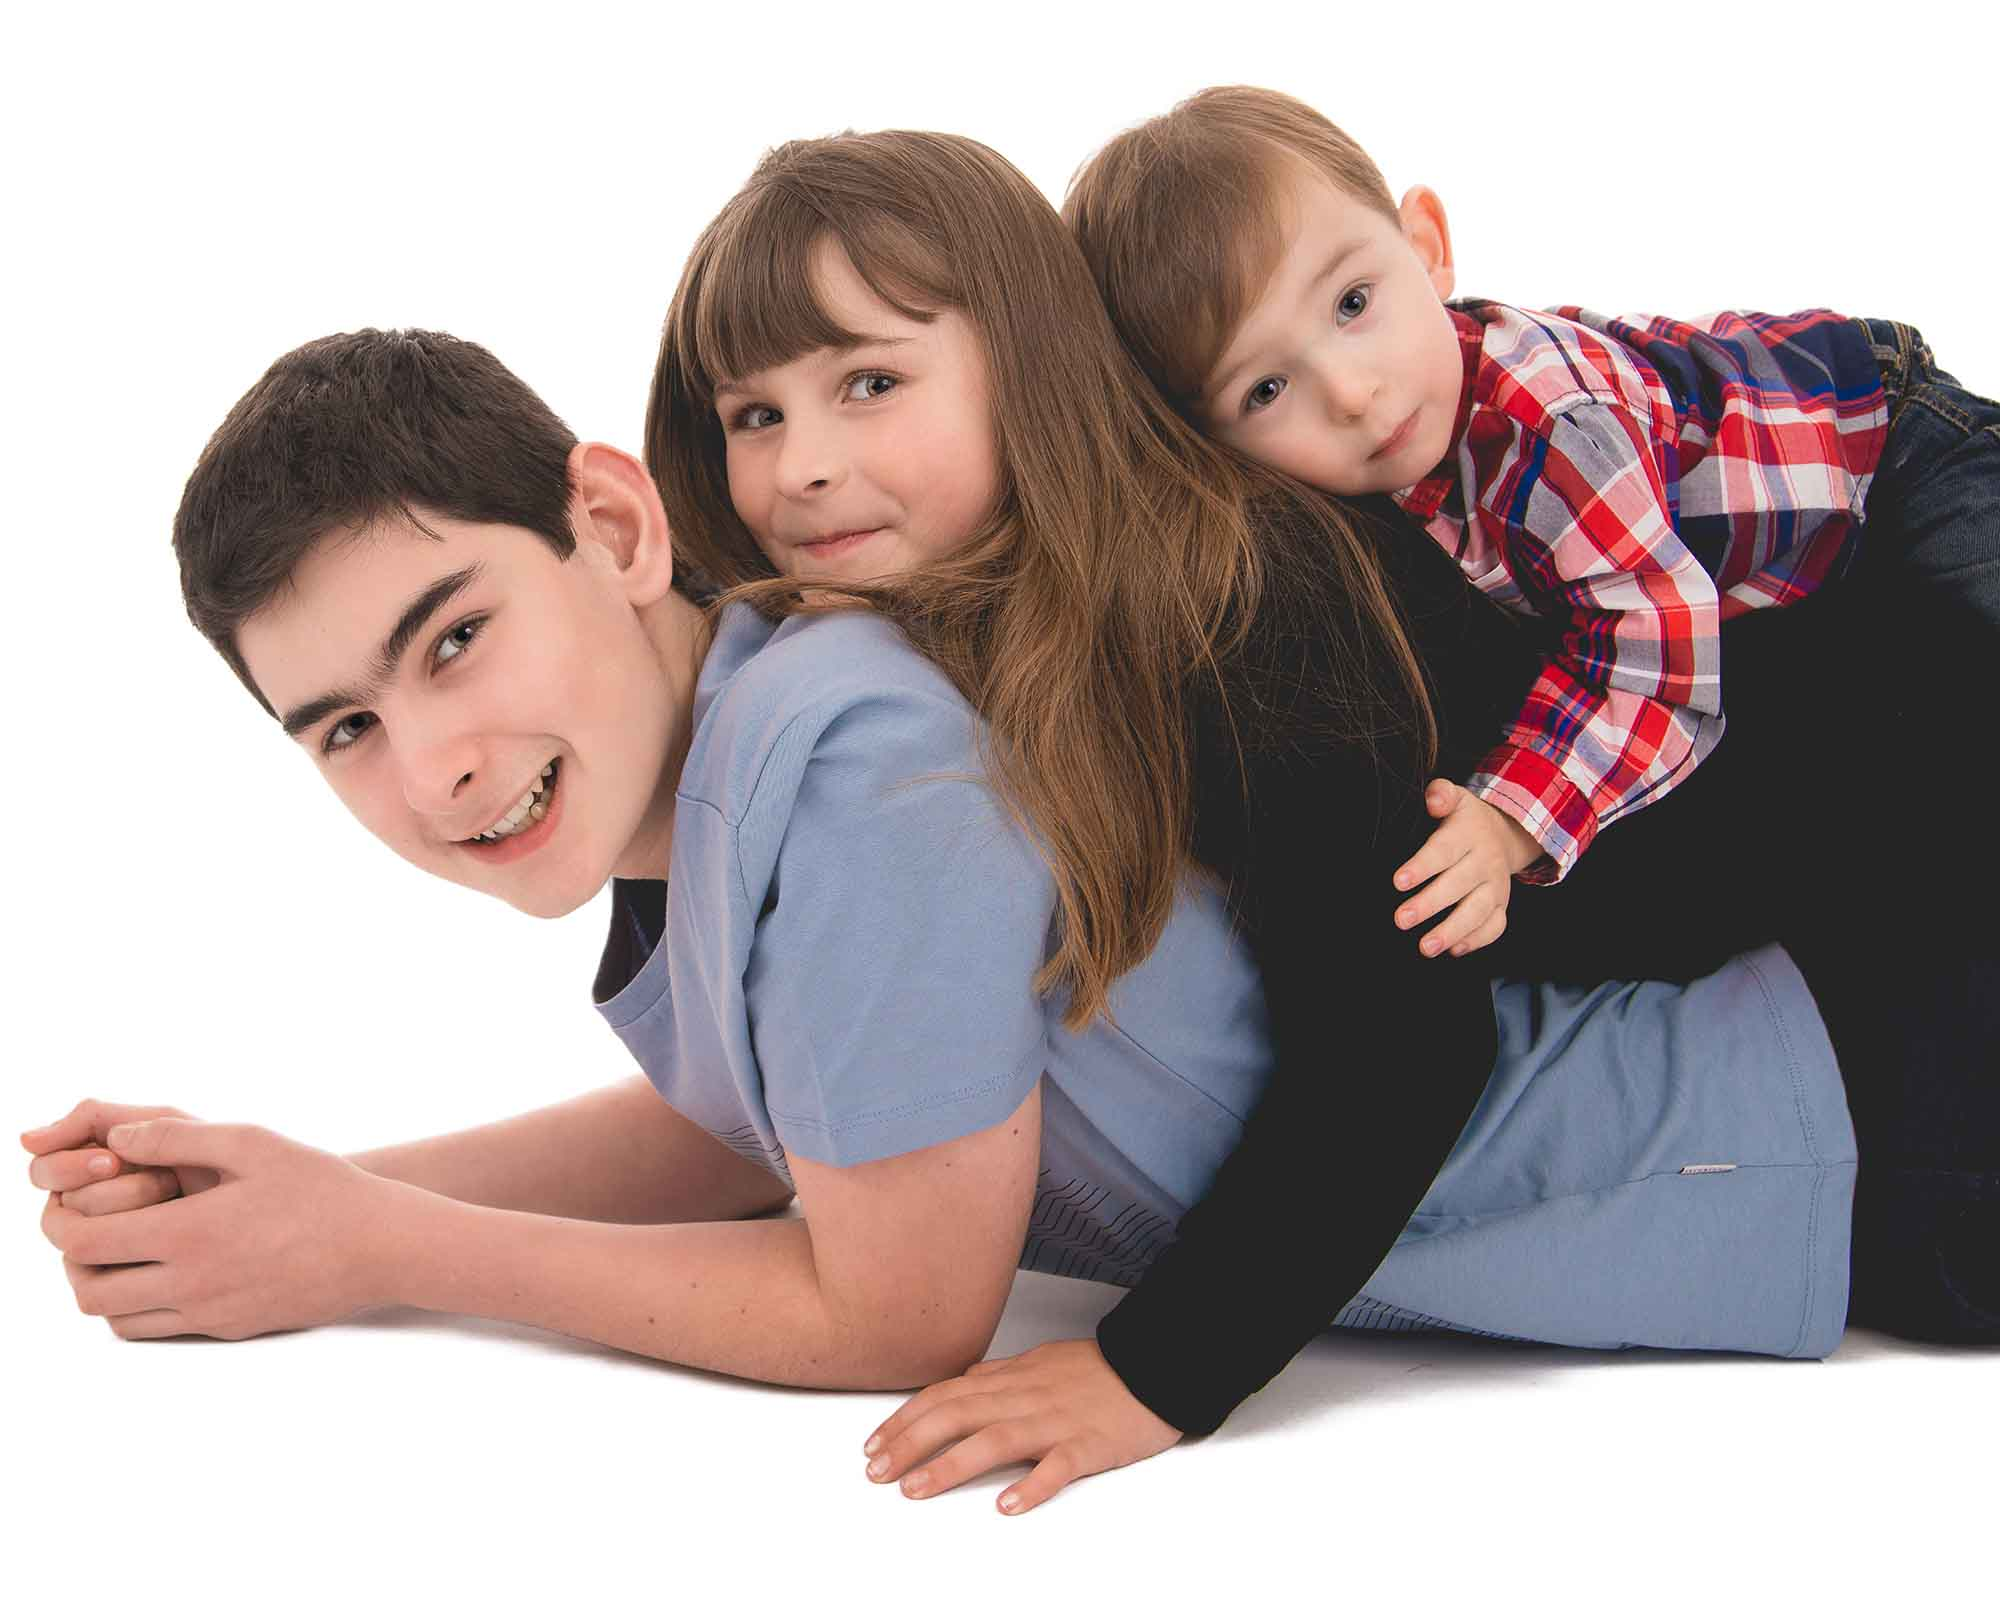 Family Portrait Photographer Belfast - Relaxed Family Run Studio